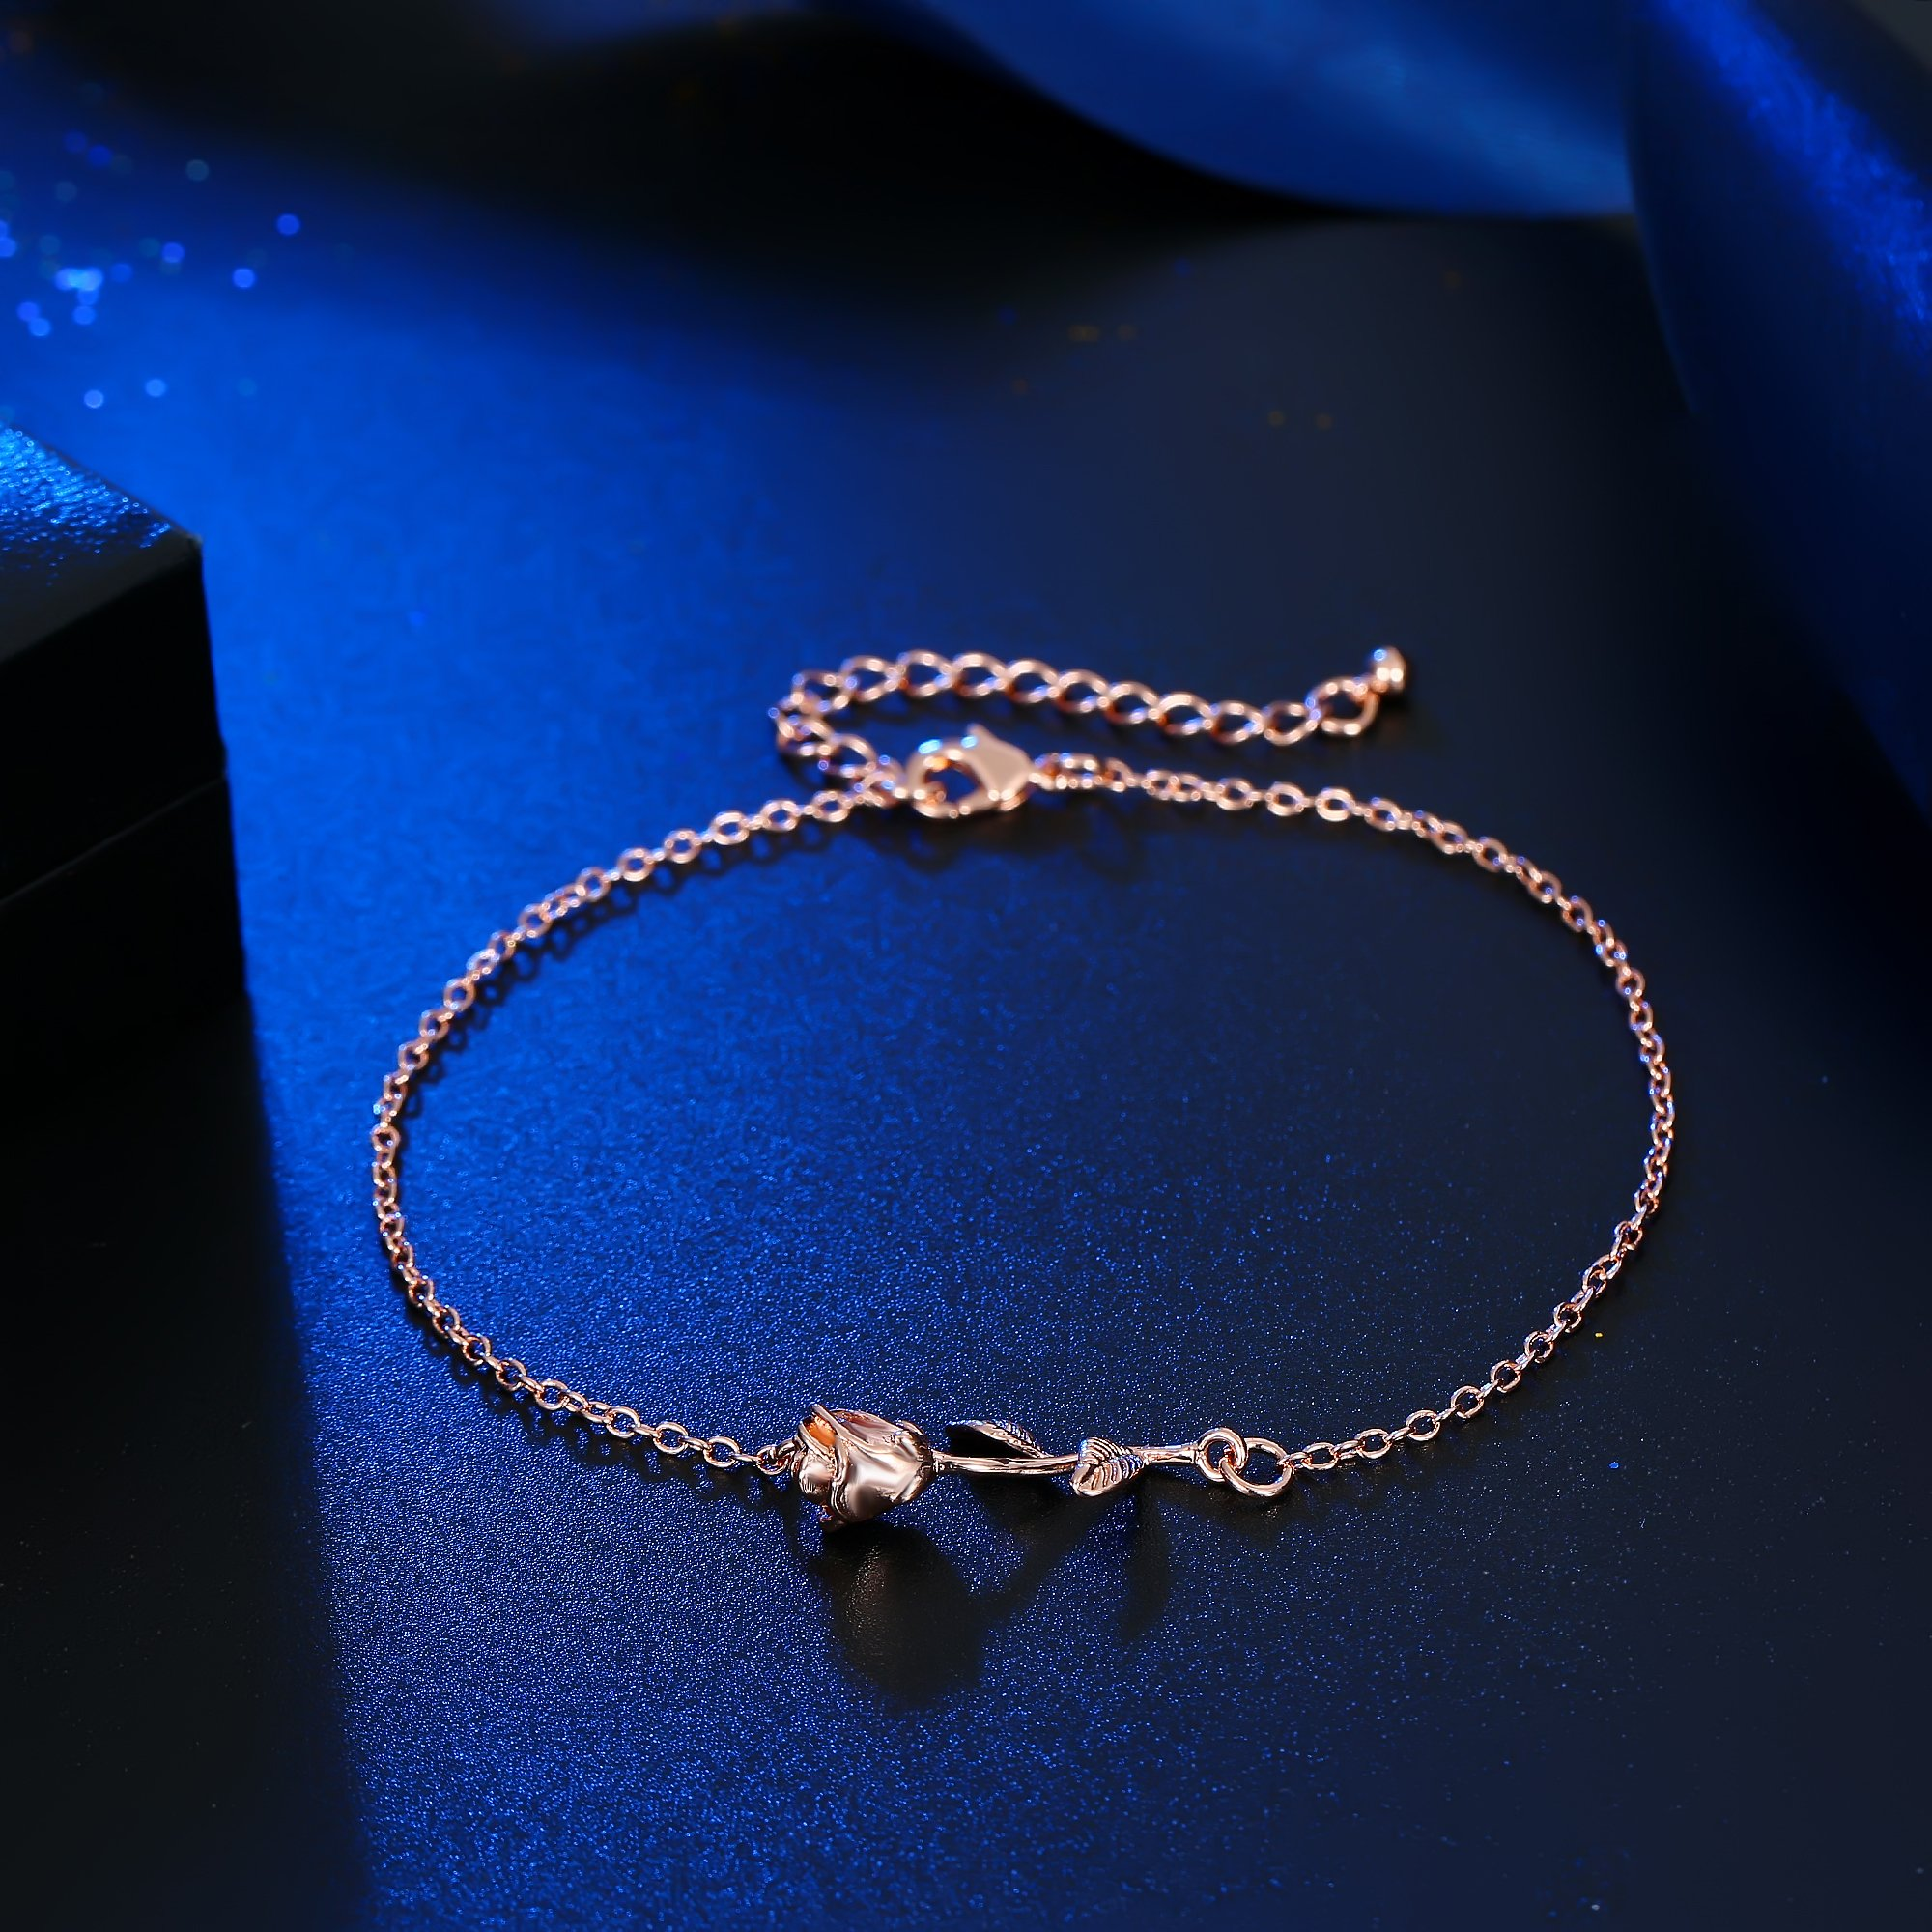 3UMeter Rose Women Girls Anklets Jewelry Exquisite Rose Gold Electroplate Brass Anklets Female, Great Foot Decoration Gift Valentine Mother's Day Birthday by 3UMeter (Image #6)